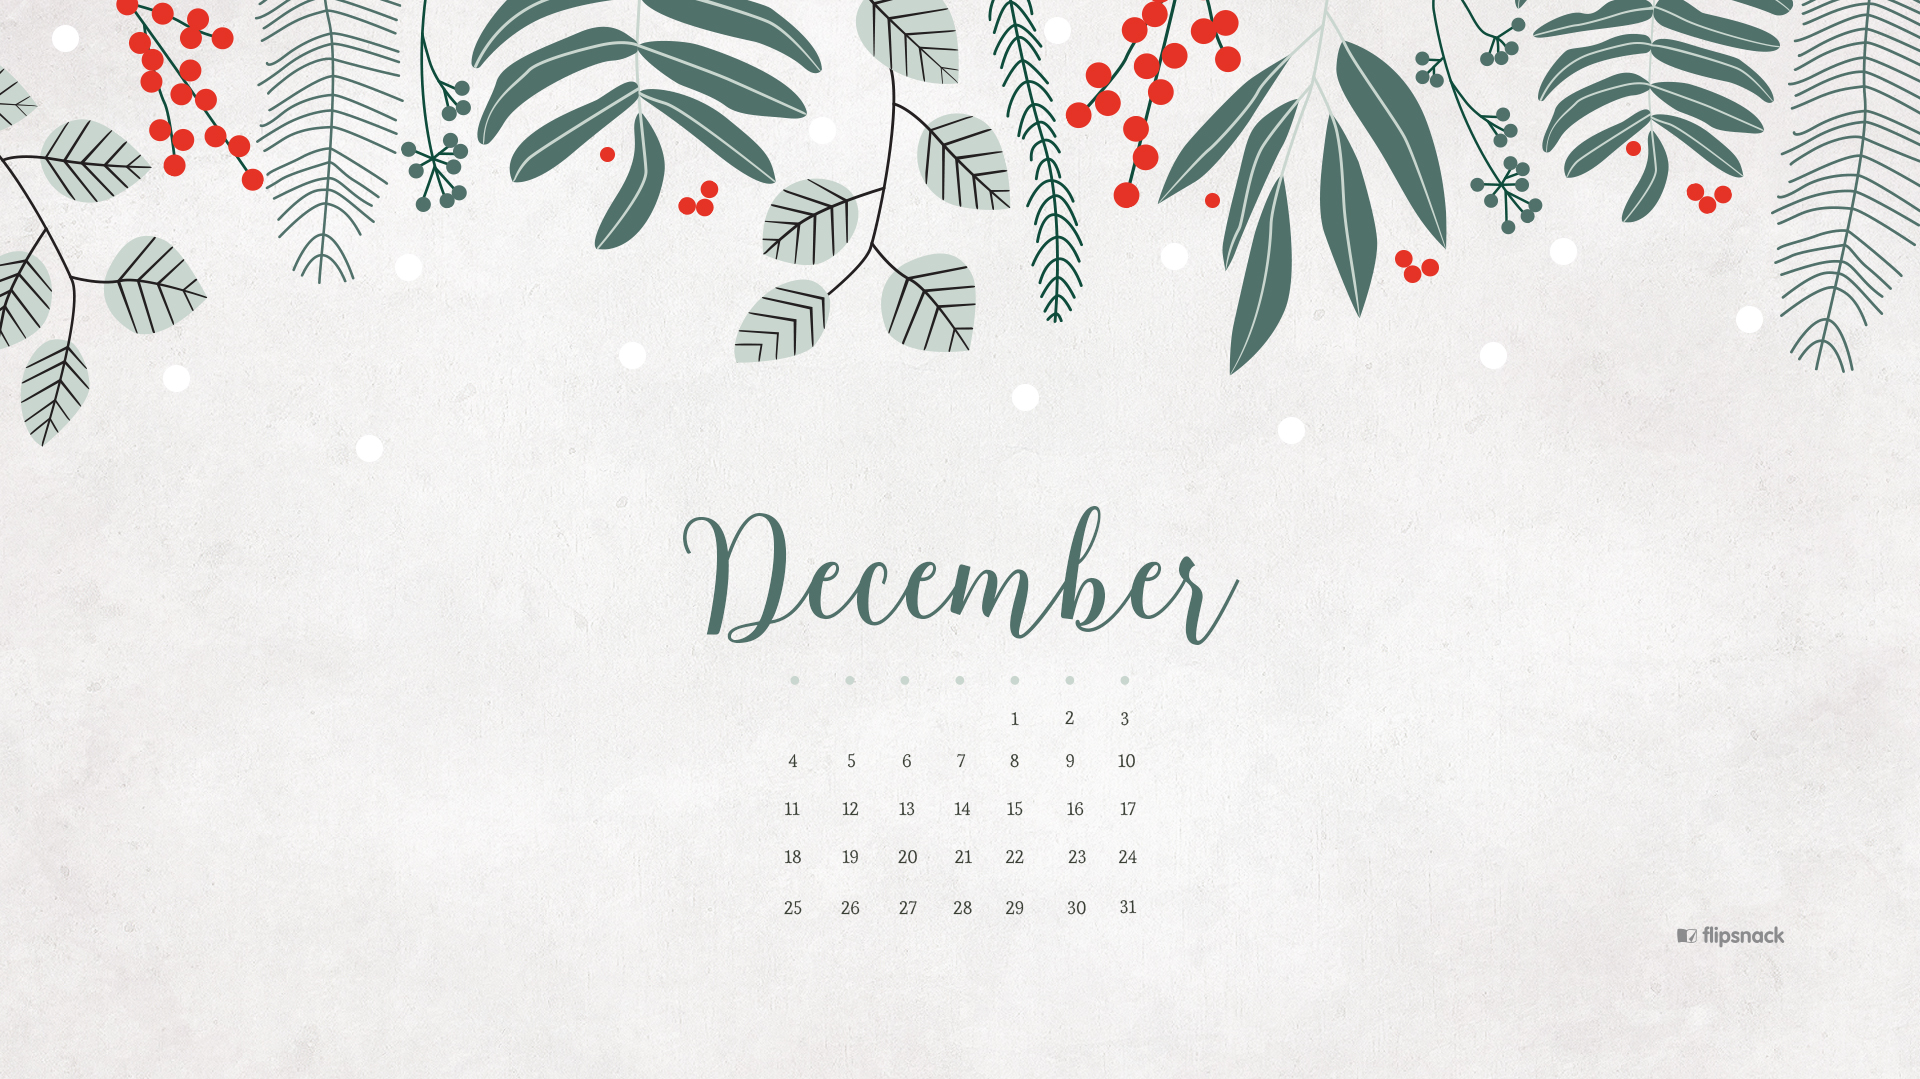 december 2016 calendar wallpaper – desktop background